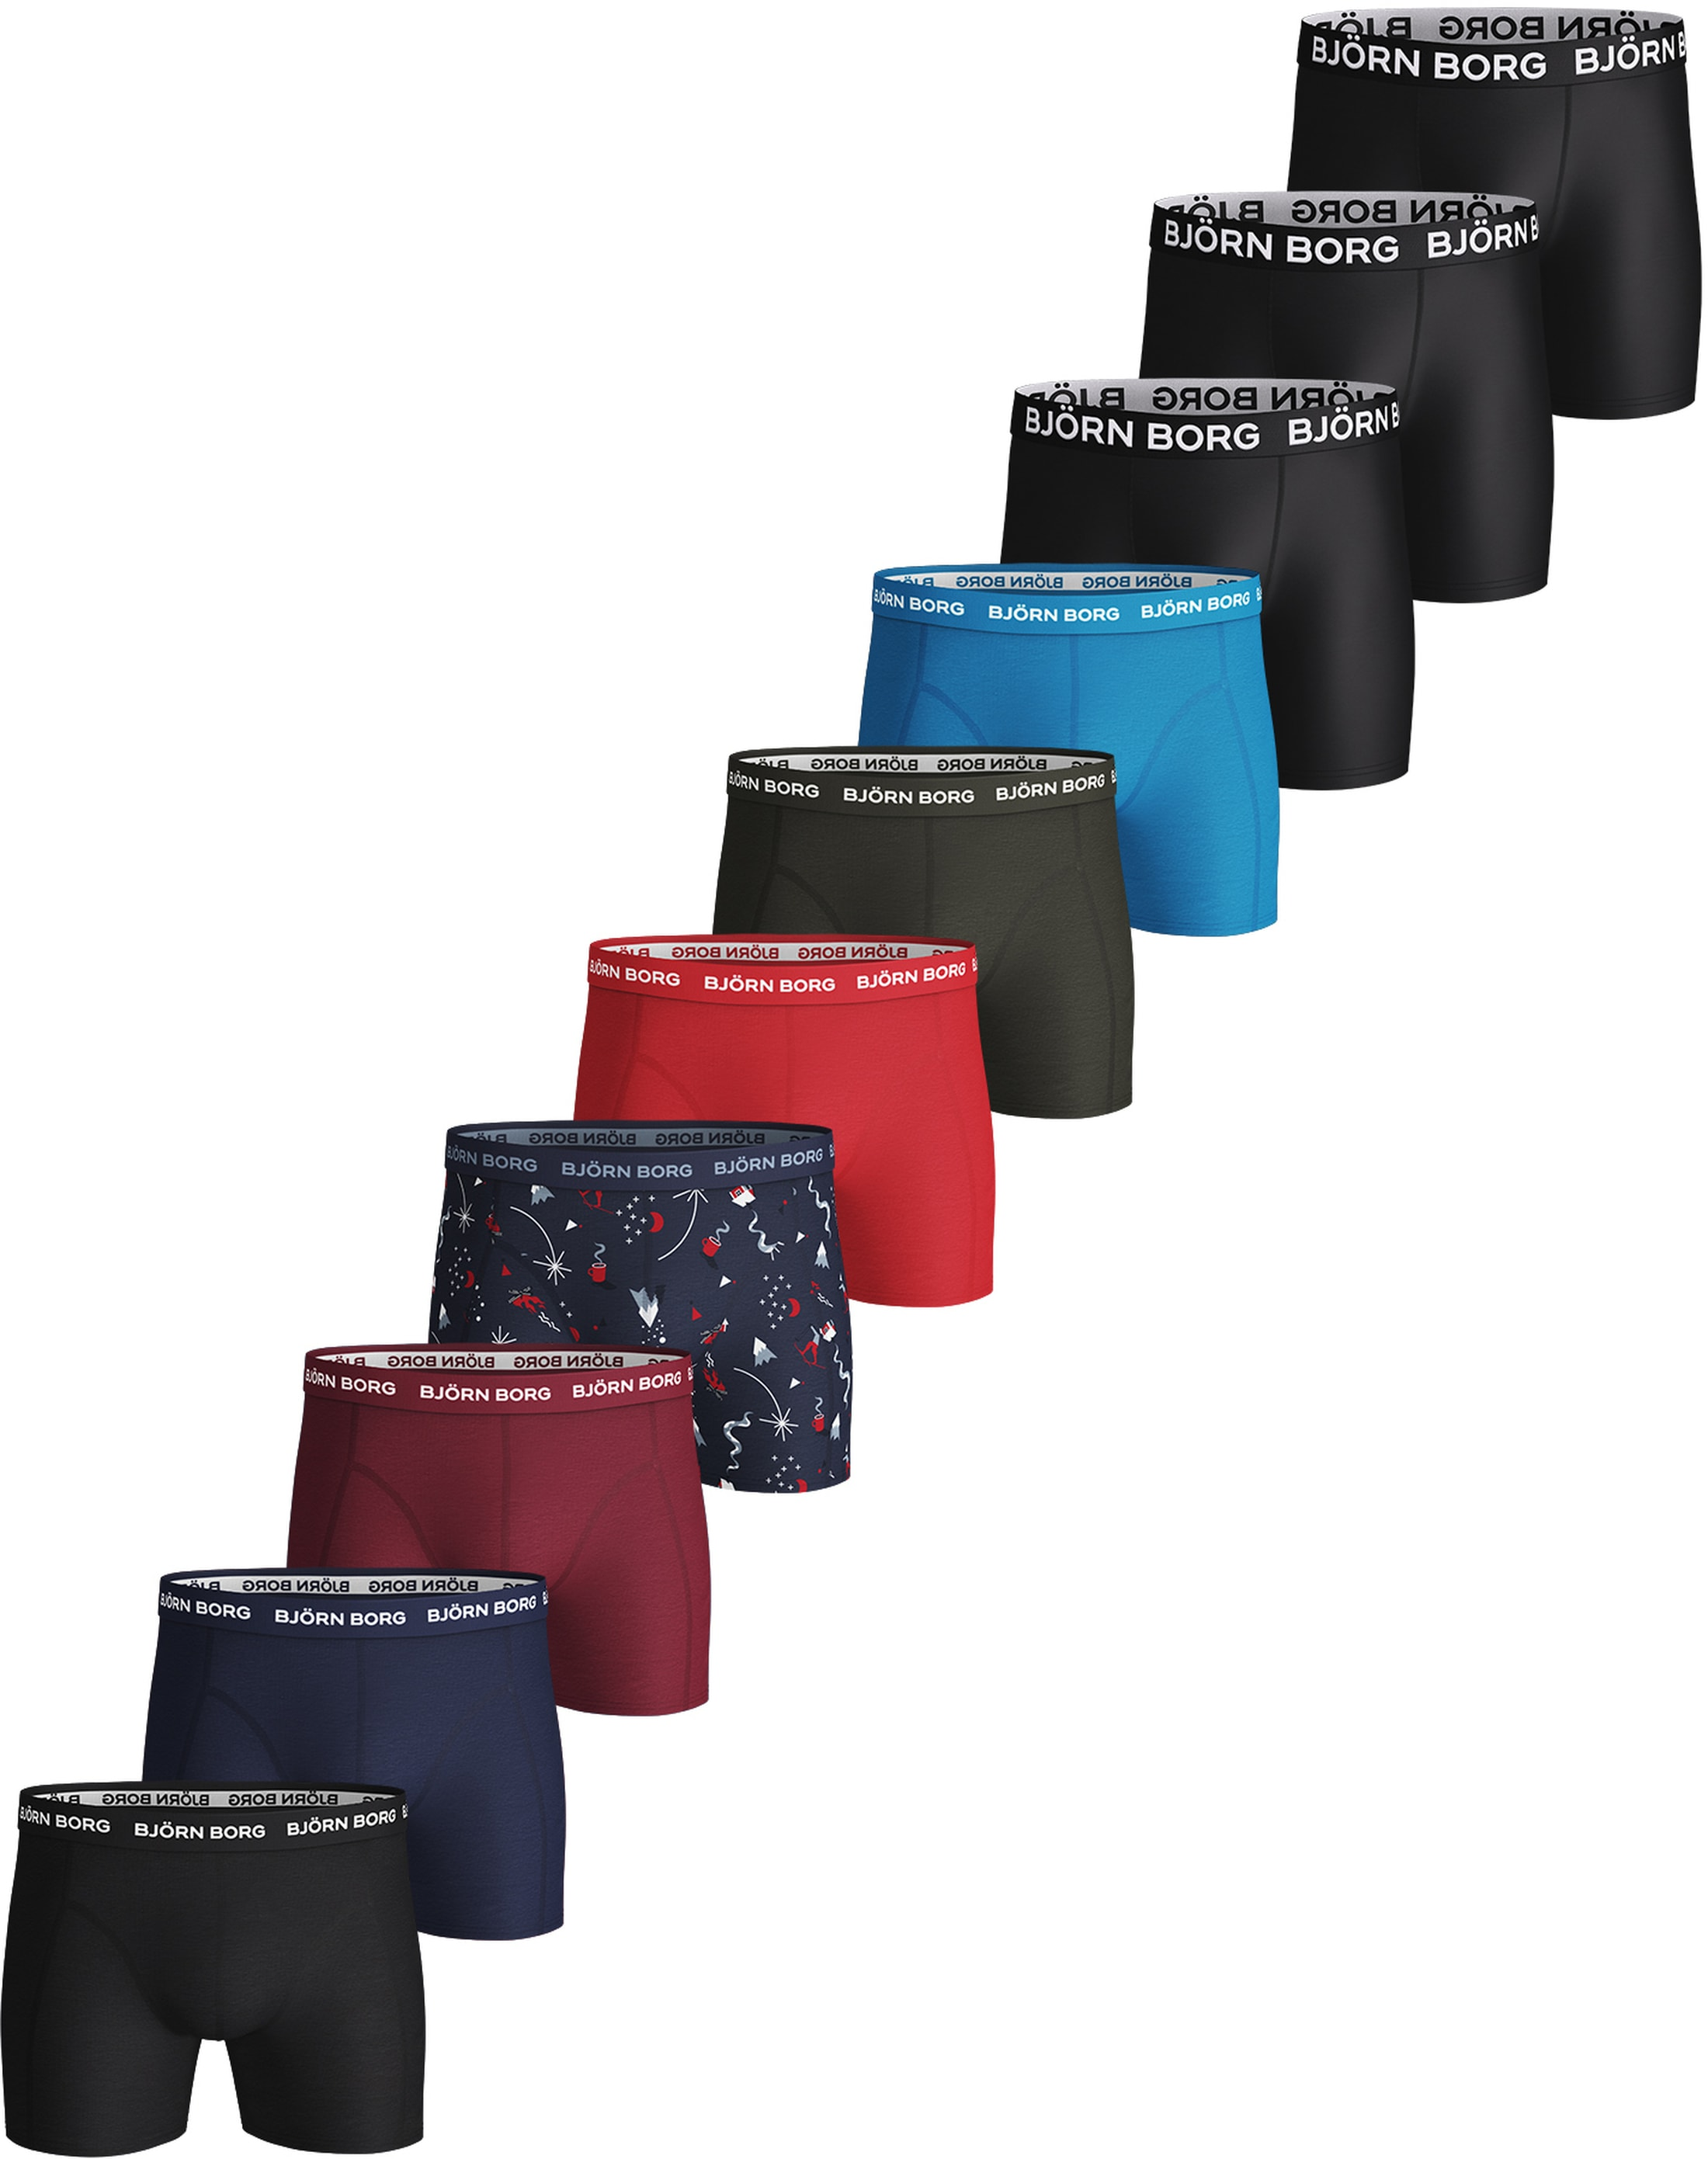 boxer shorts 10 pack